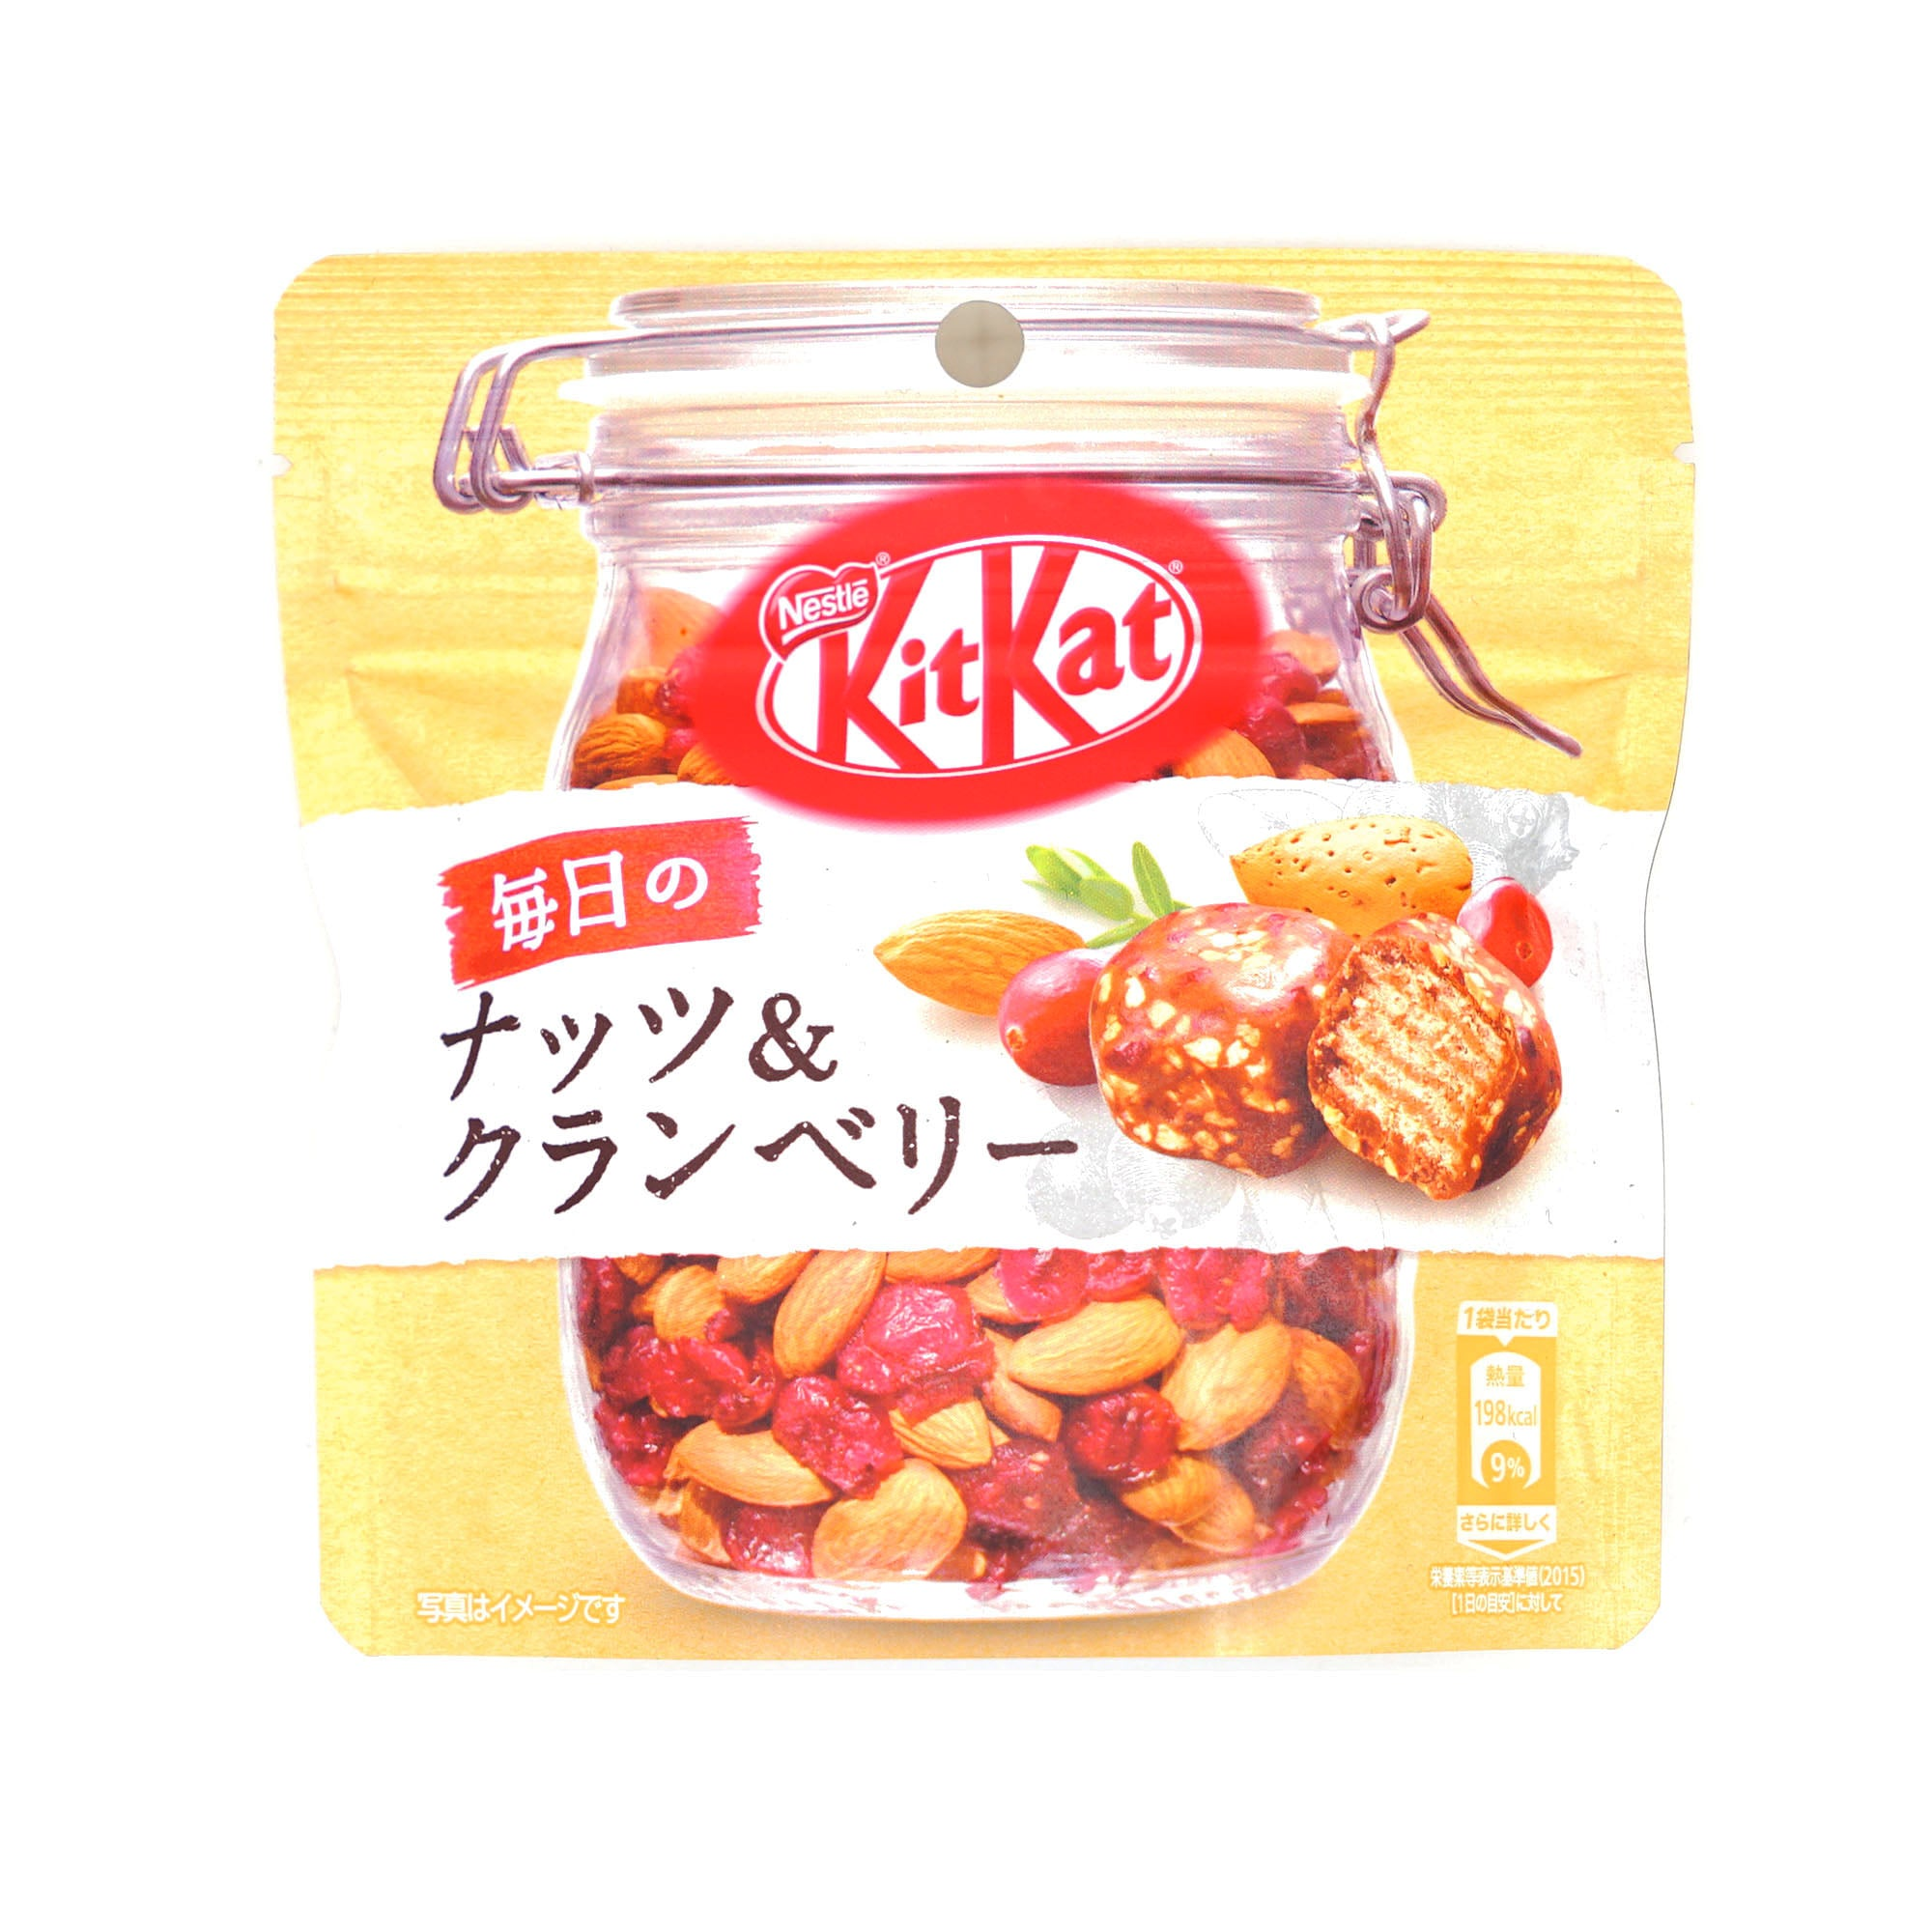 Japanese Kit Kat: Cranberry and Almond Mini (1 Bag)